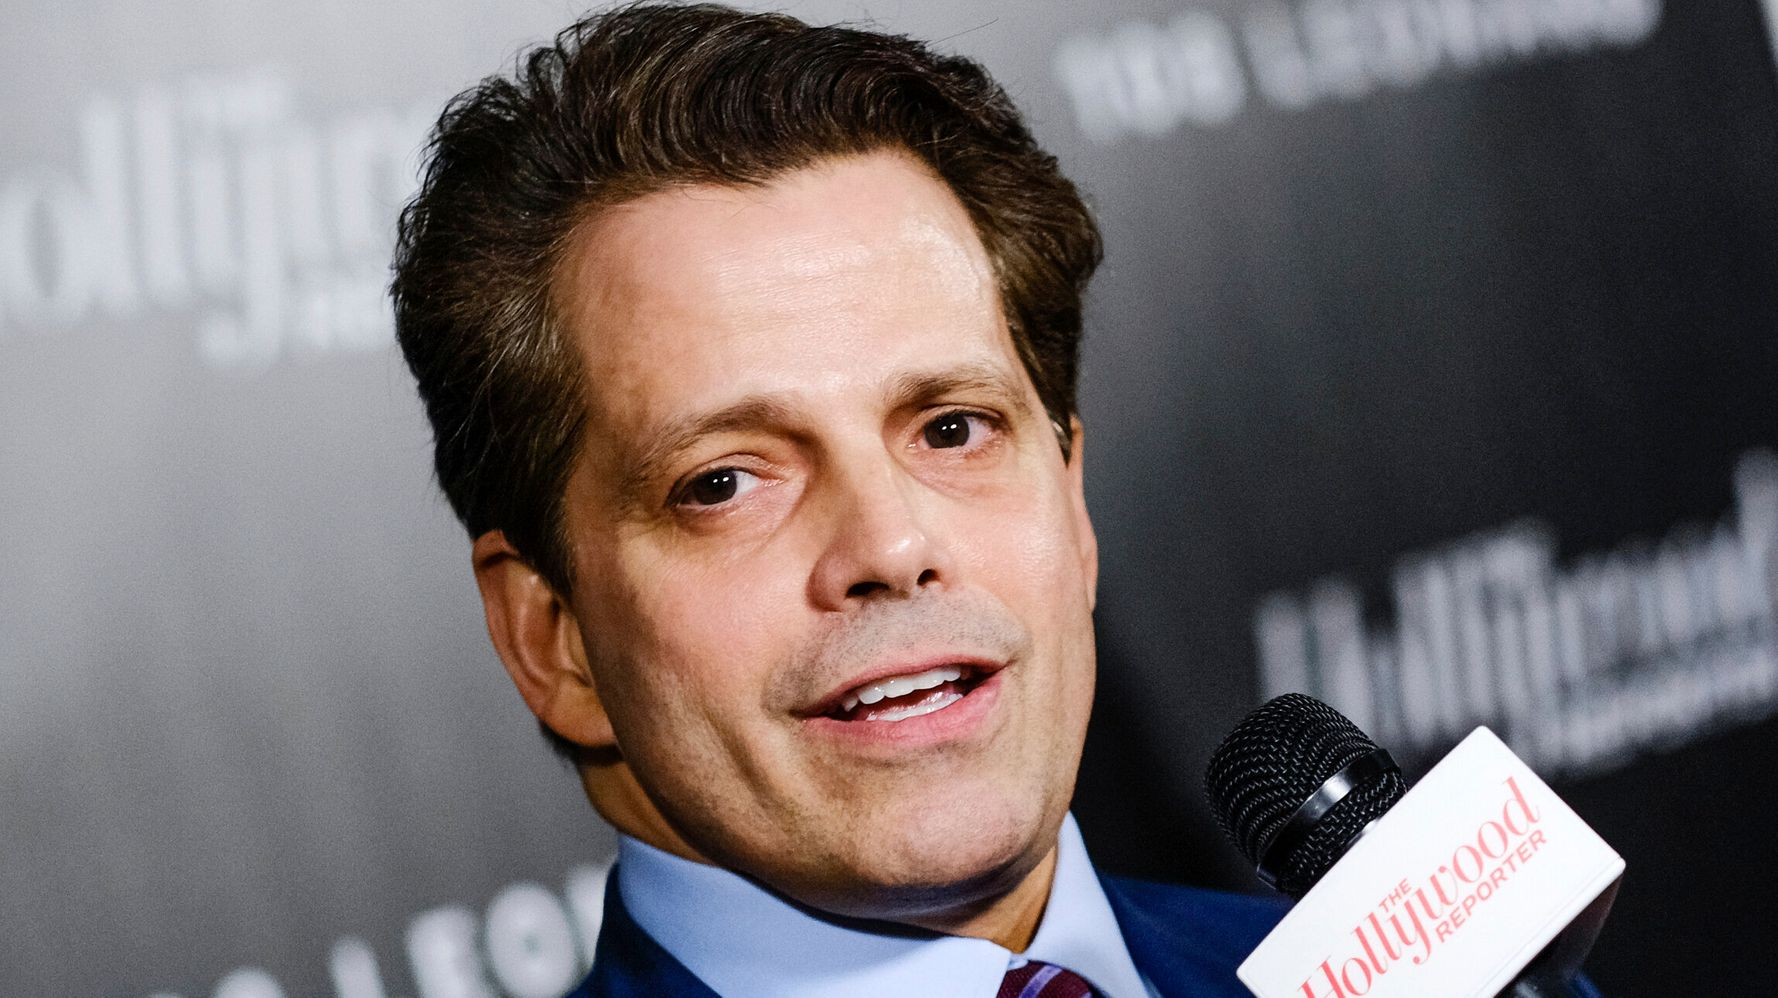 Westlake Legal Group 5d5104c83b00004d00daed8c Anthony Scaramucci Says GOP Could Replace 'Chernobyl' Trump On 2020 Ballot